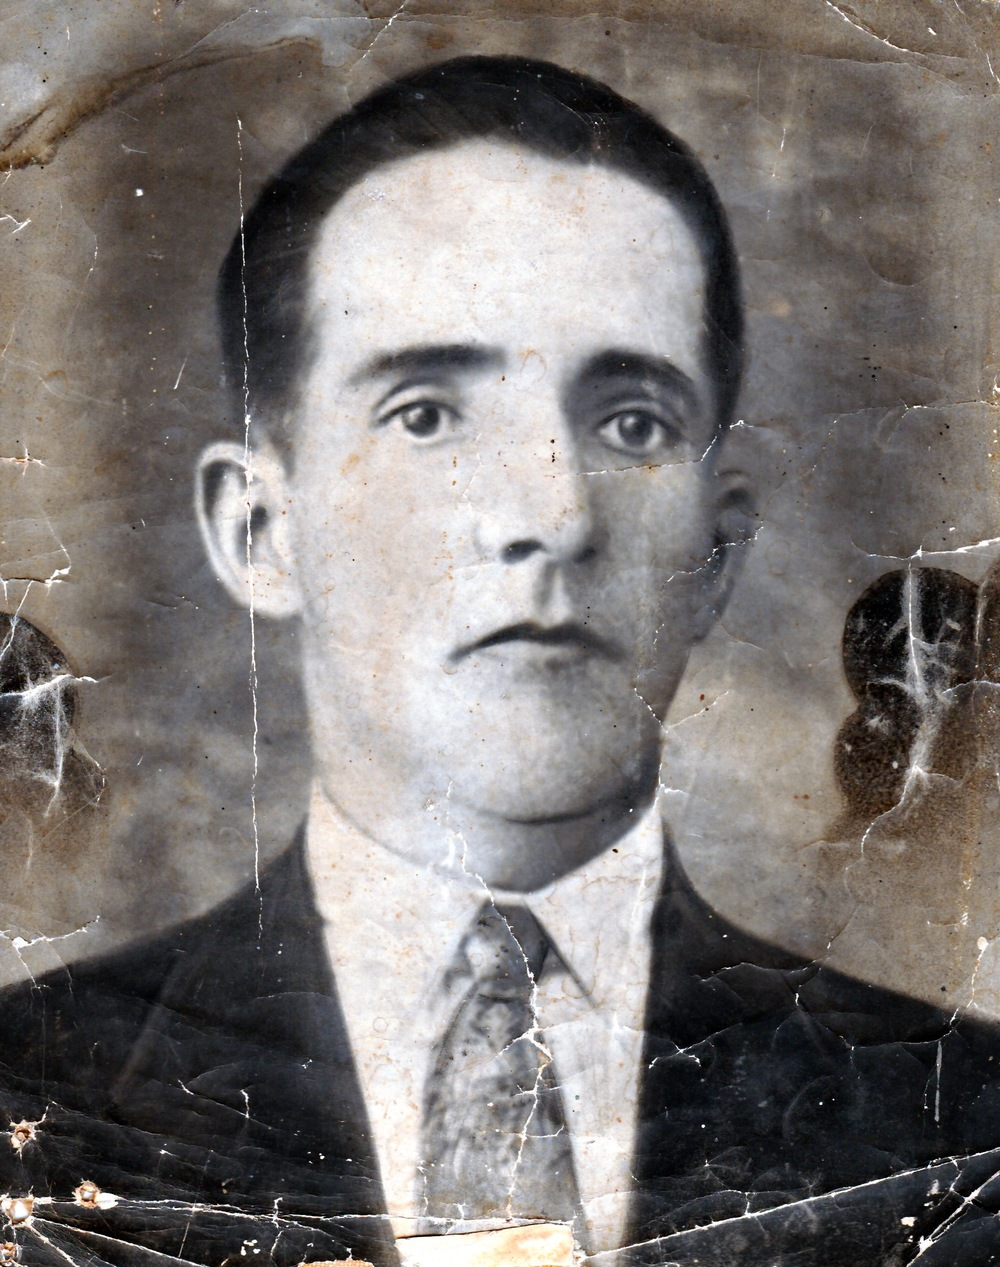 My mother's grandfather Domingo Rodriguez, shortly after he came to Cuba from Spain to work building the railroads in the early 1920's.